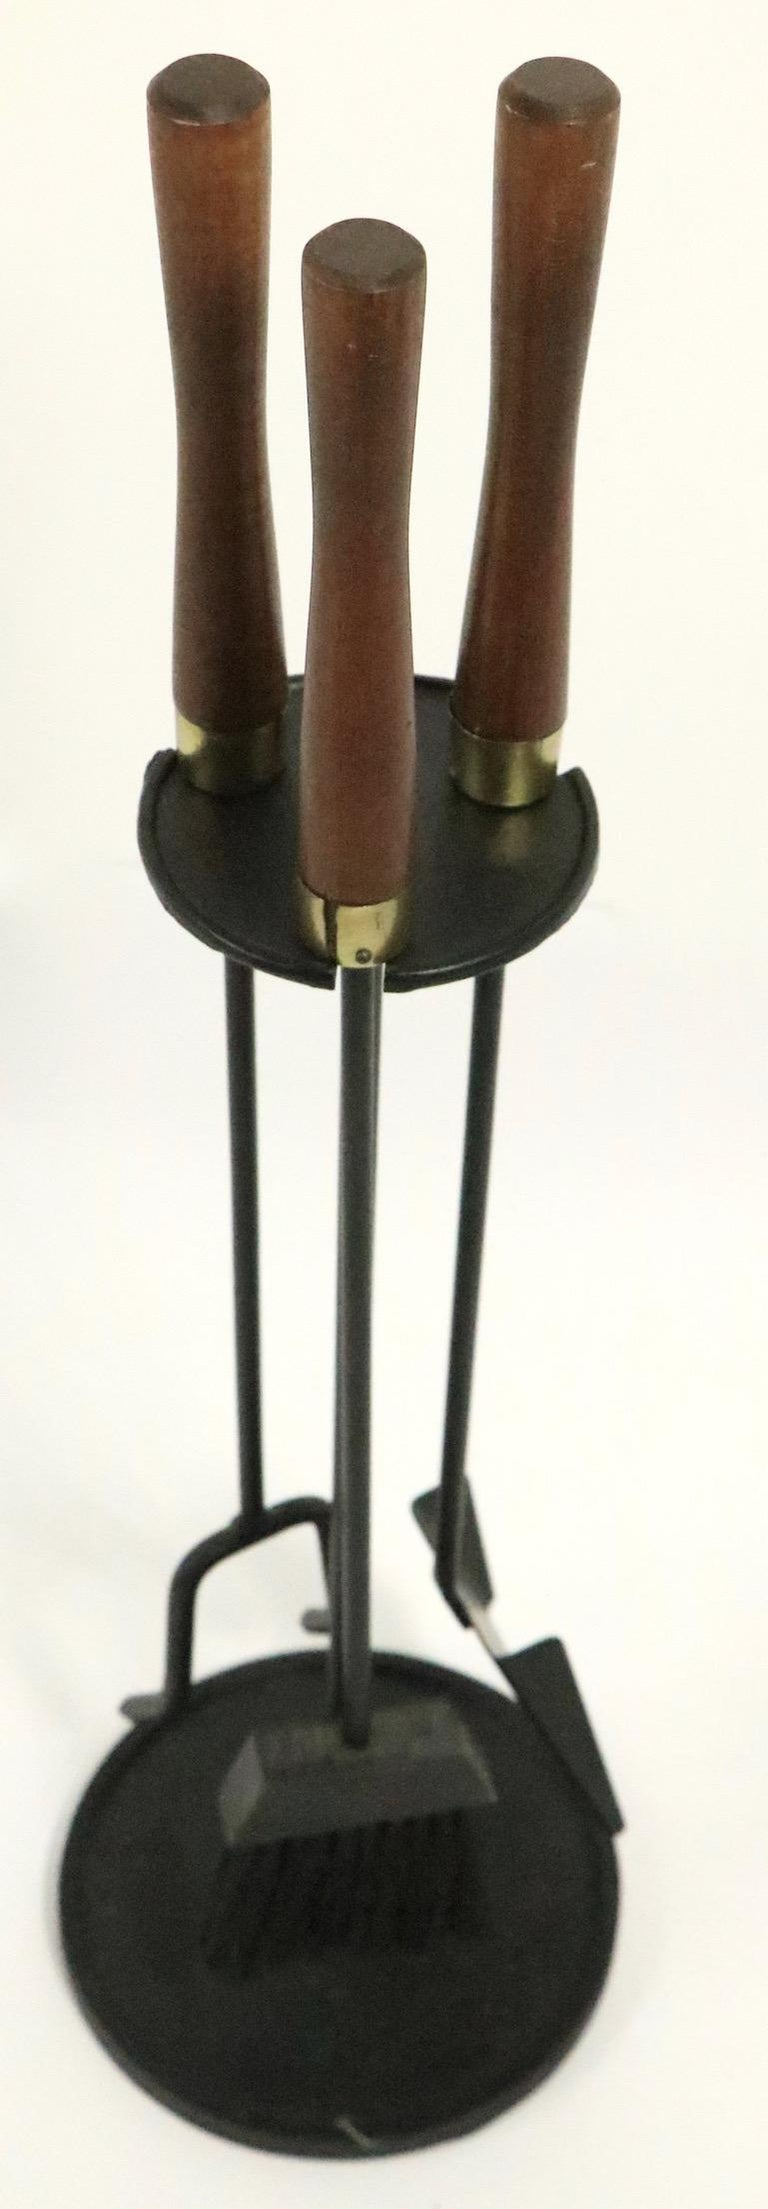 Classic midcentury fireplace tool set by Seymour Manufacturing Company. Three tools, shovel, brush and poker, and the stand . The brass collars which cap the wood handles have splits, please see images.